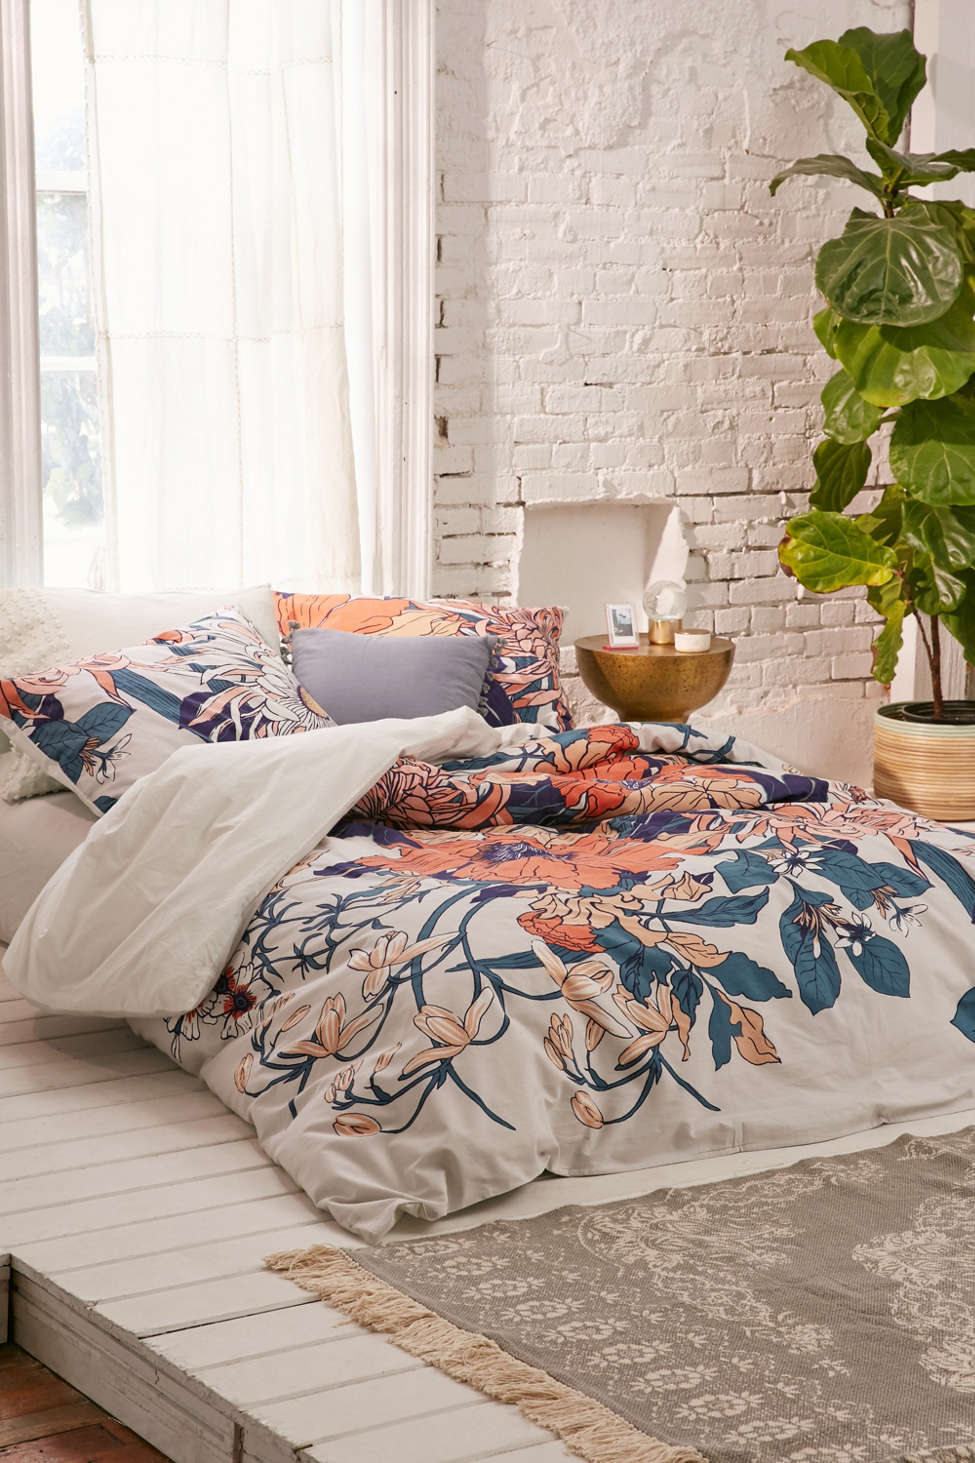 Slide View: 2: Botanical Scarf Duvet Cover